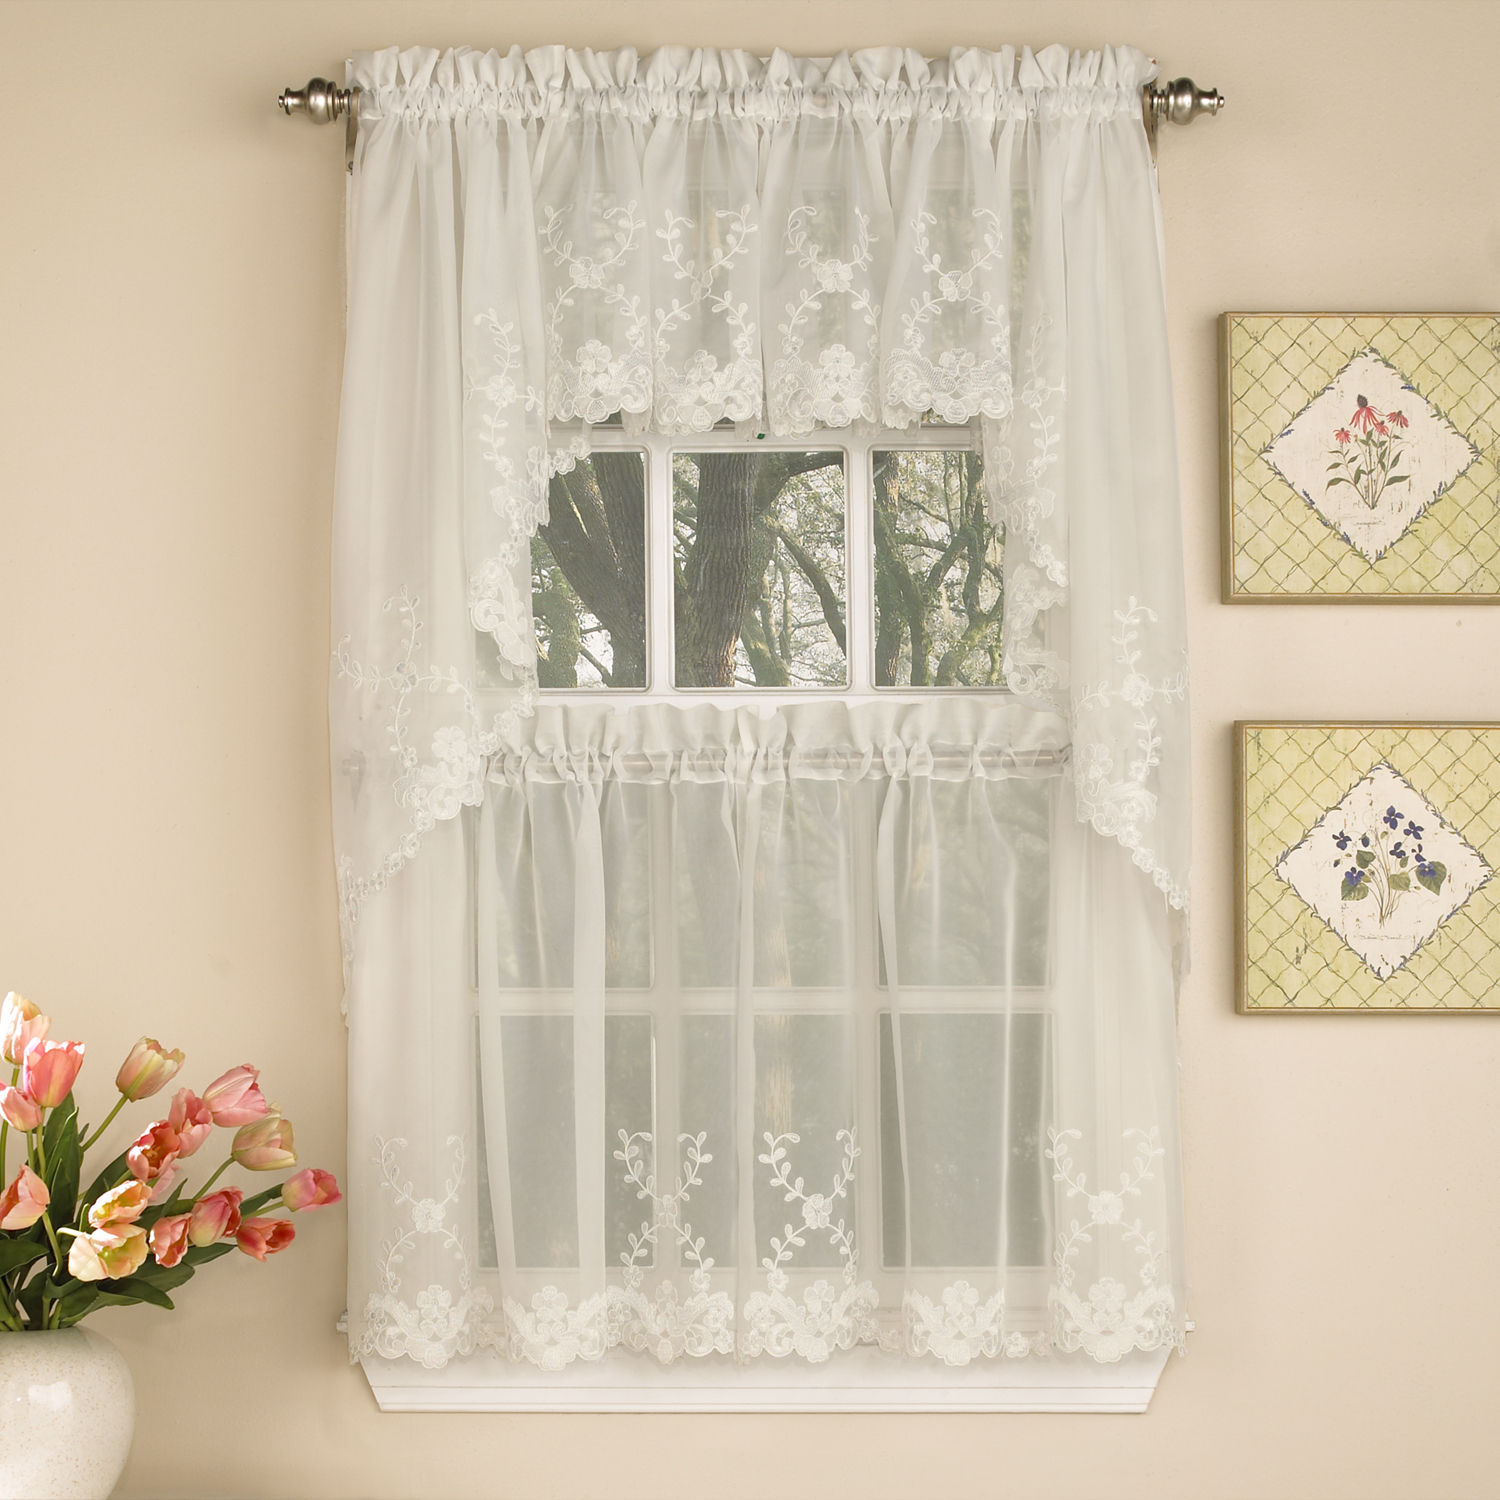 Details About Laurel Leaf Sheer Voile Embroidered Ivory Kitchen Curtains Tier, Valance Or Swag Throughout Preferred Floral Embroidered Sheer Kitchen Curtain Tiers, Swags And Valances (View 3 of 20)